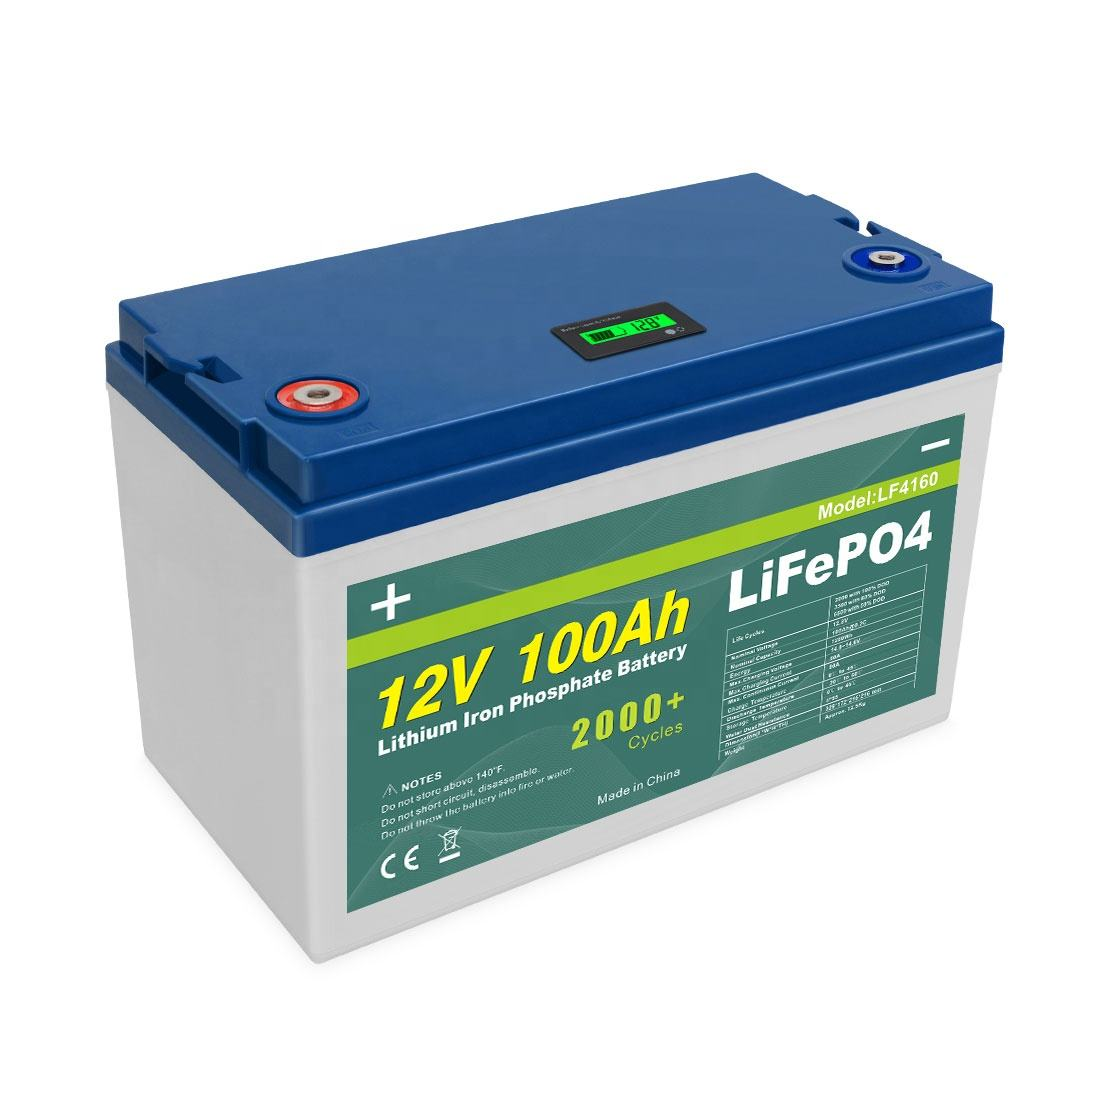 12v Lifepo4 Lithium Battery Rechargeable Long Life 3.2v 12.8V 150Ah 200Ah 300Ah 280Ah Lifepo4 Solar Battery Pack Cell 12V 100Ah Lithium Ion Batteries